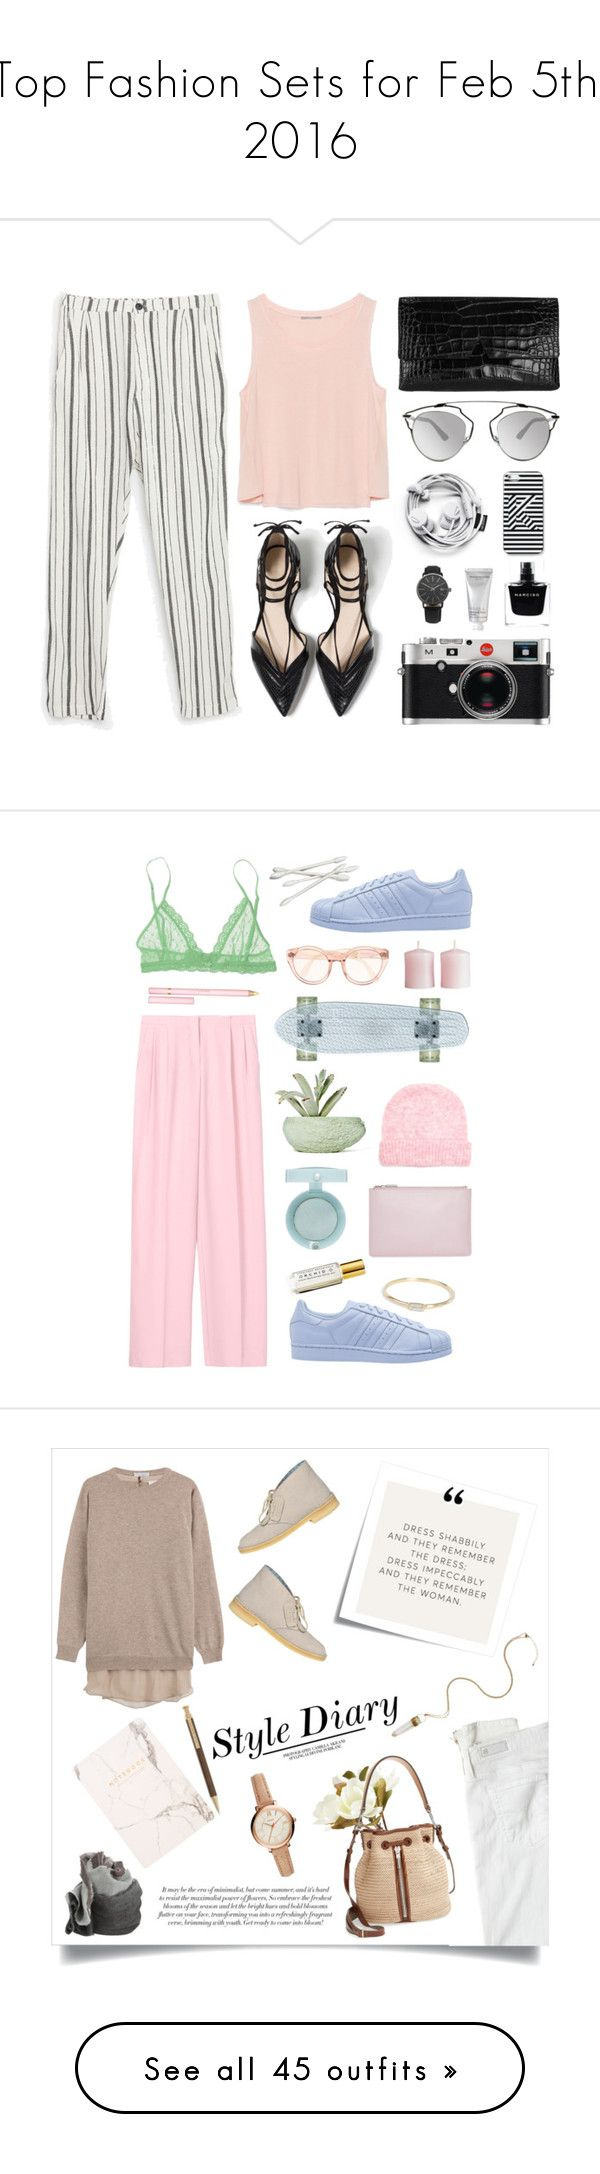 """""""Top Fashion Sets for Feb 5th, 2016"""" by polyvore ❤ liked on Polyvore featuring Zara, Vince, Christian Dior, Kate Spade Saturday, Leica, Narciso Rodriguez, African Botanics, women's clothing, women and female"""